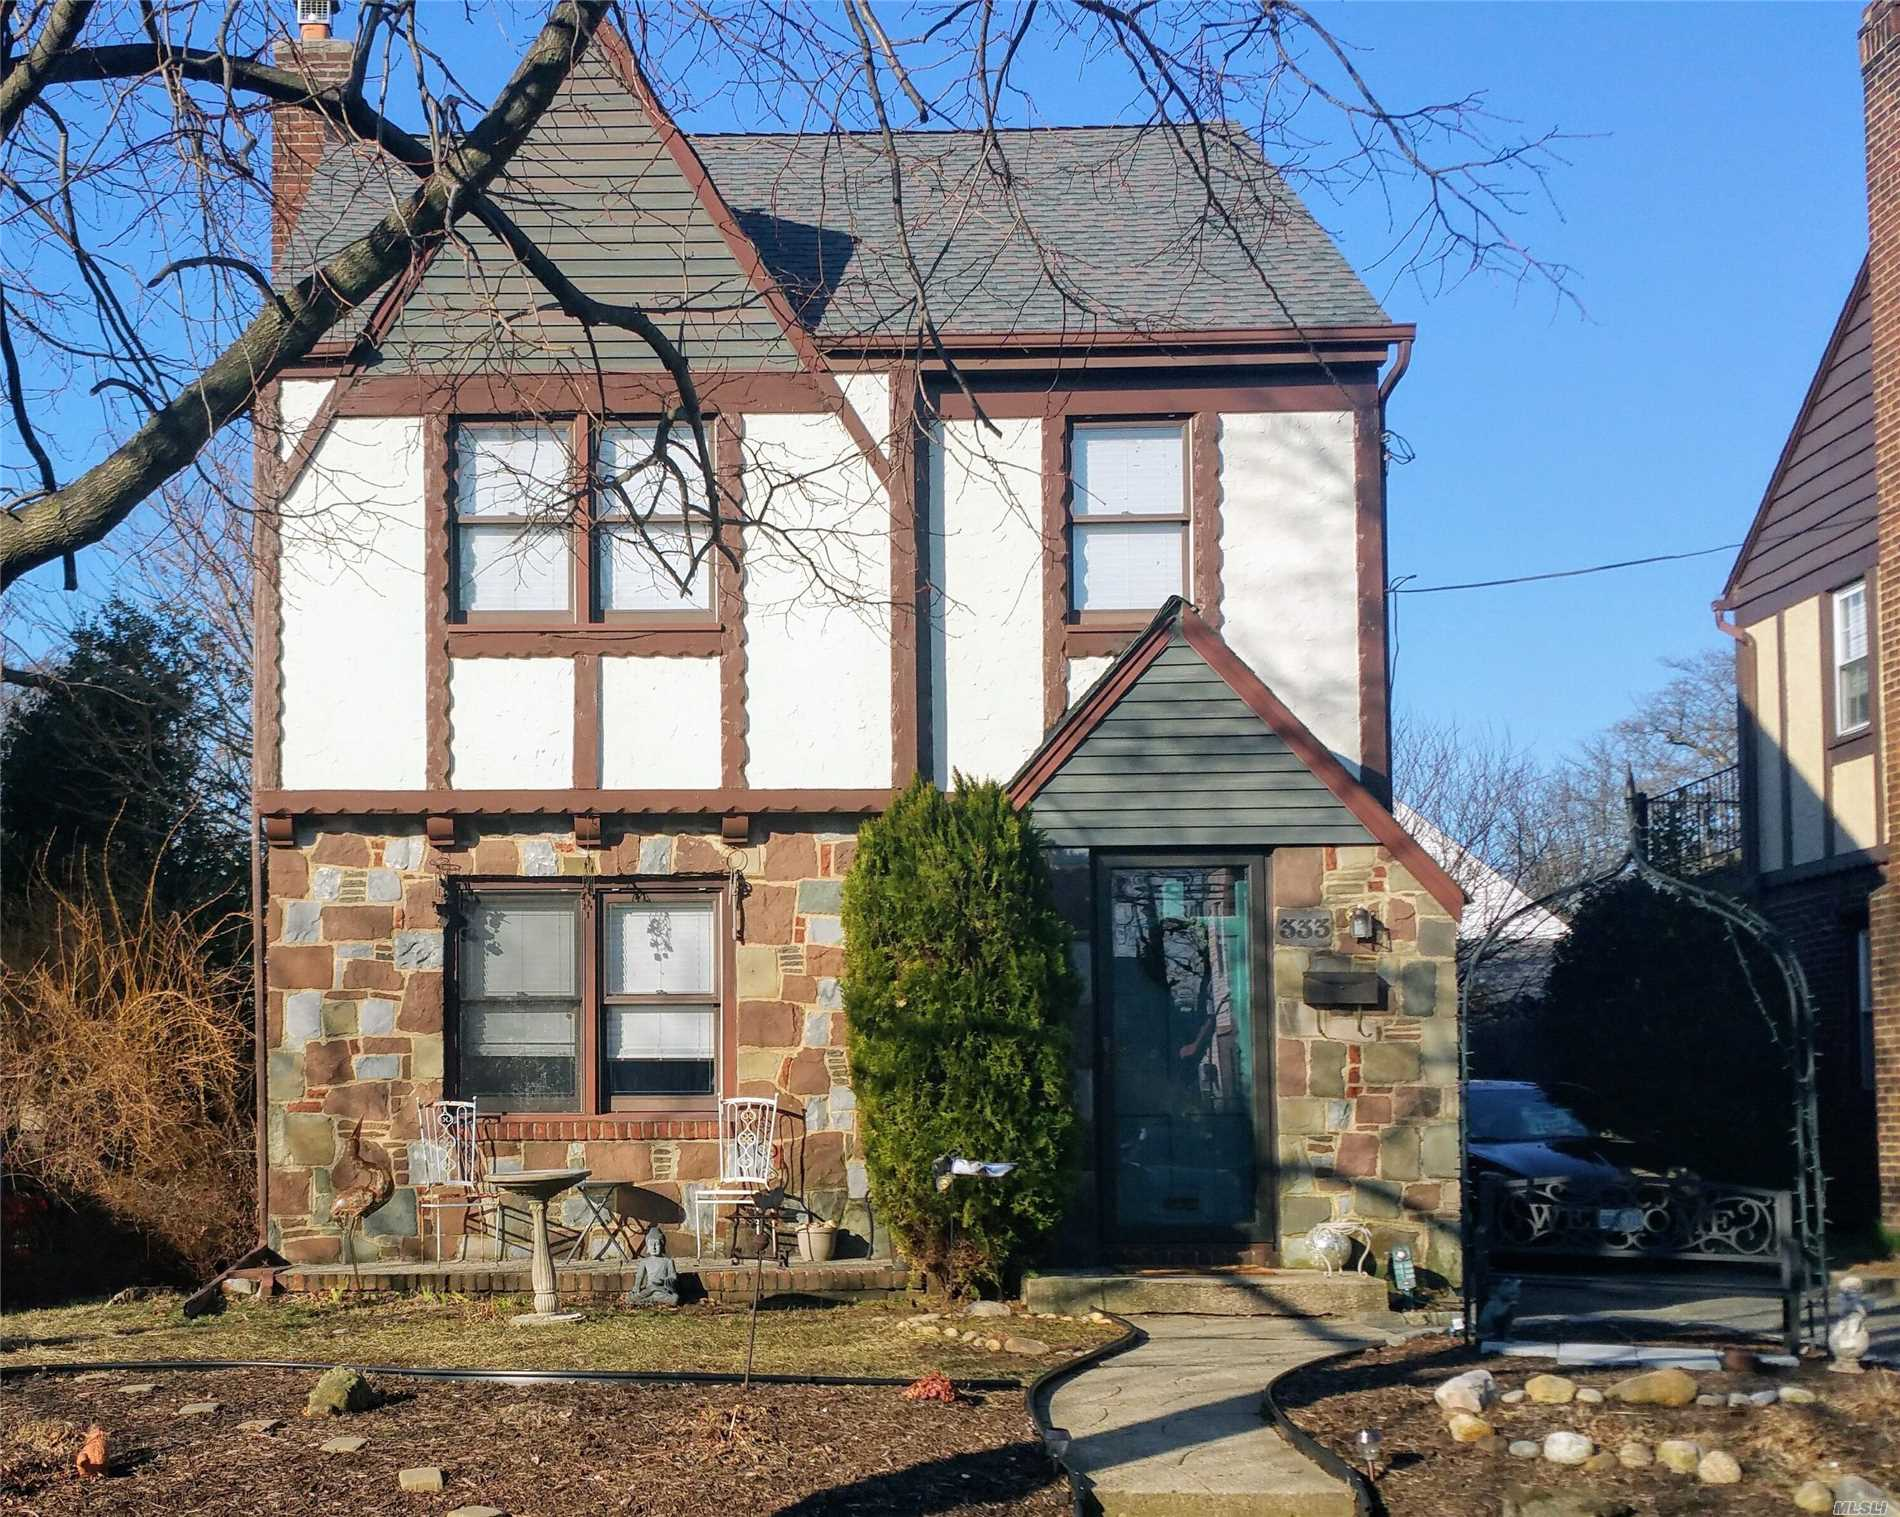 Spacious Tudor Colonial Home! Open Concept Kitchen Family Room With A Wood Burning Fireplace And Vaulted Ceiling. Charming Details,  French Doors, Wood Floors And Wood Mouldings Second Floor Has 3 Bedrooms And A Full Bath. Mineola Amenities Include Pool, Library, Park With Gazebo For Summer Concerts. 33 Minute Commute On Express Trains To Nyc. Brand New Roof W/ Warranty